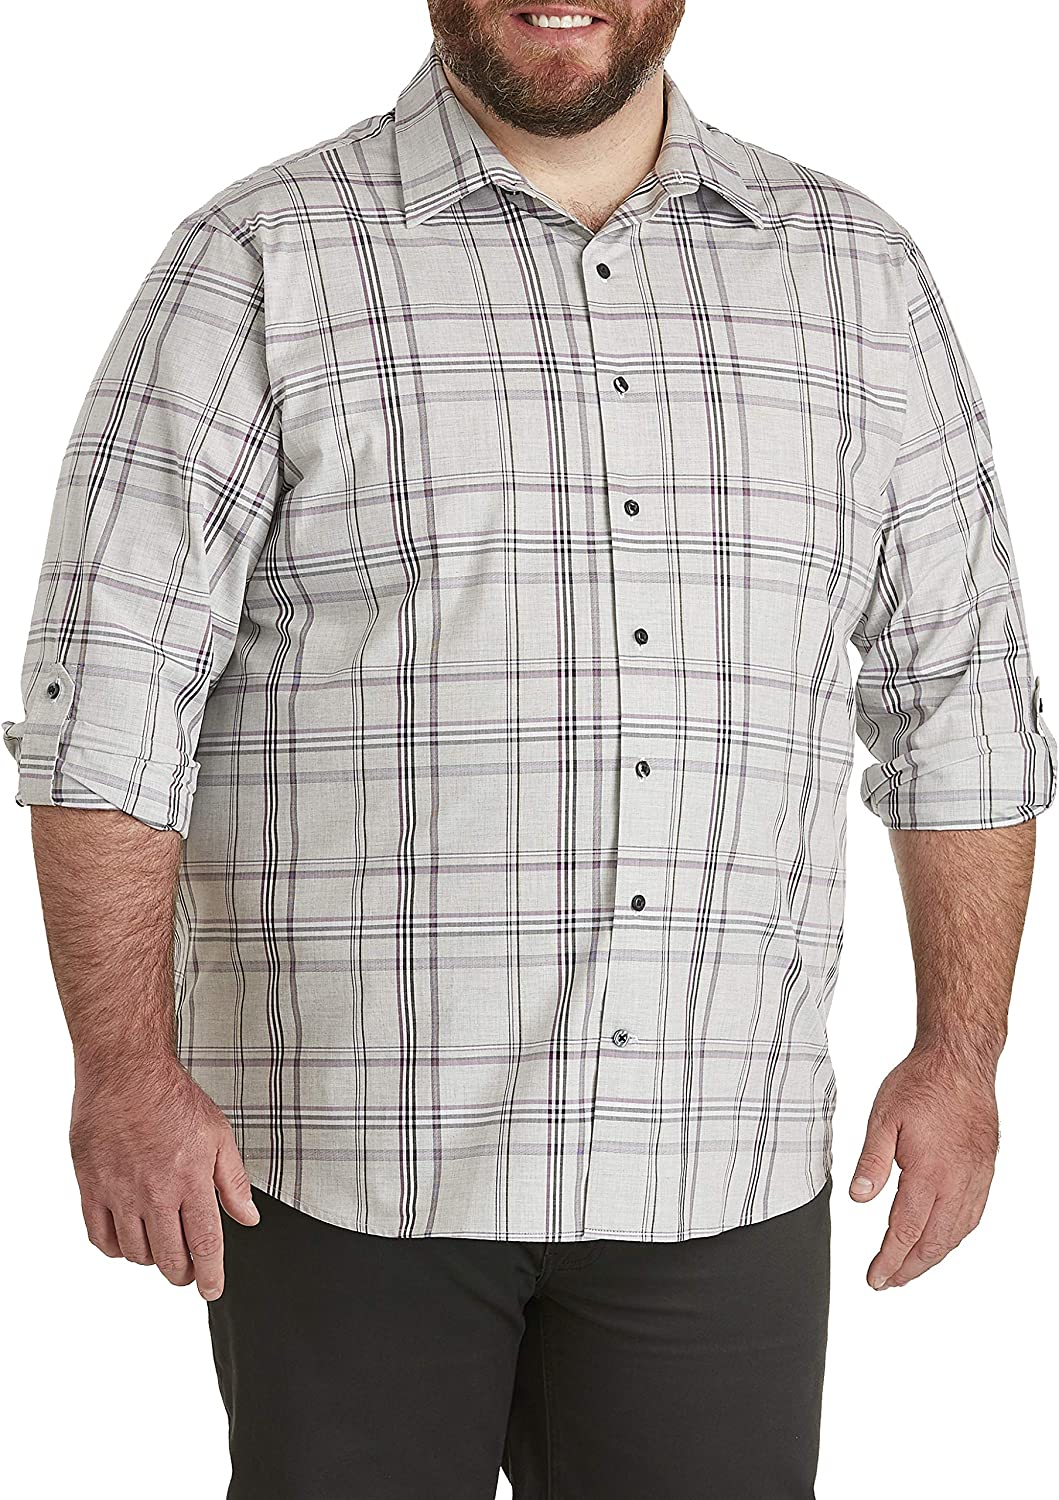 DXL Synrgy Big and Tall Roll Sleeve Large Plaid Sport Shirt, Grey Heather